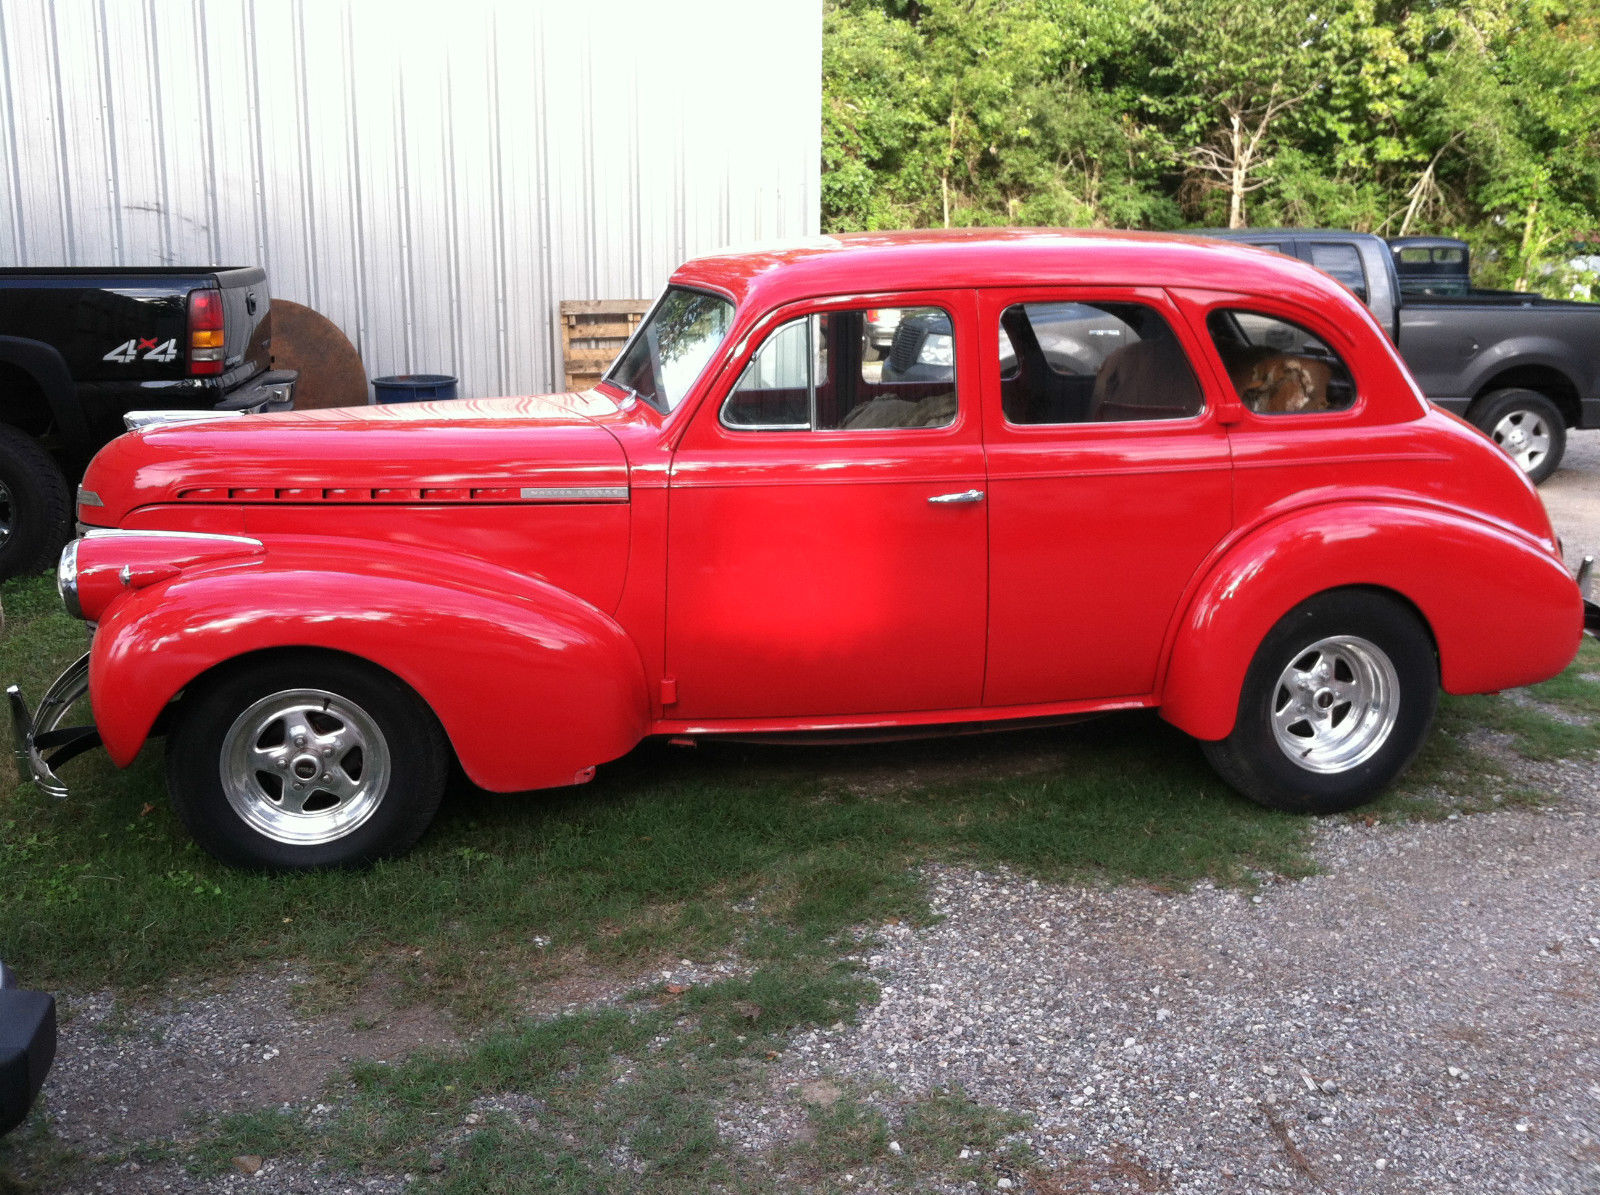 1940 Chevrolet Other-  							 							show original title